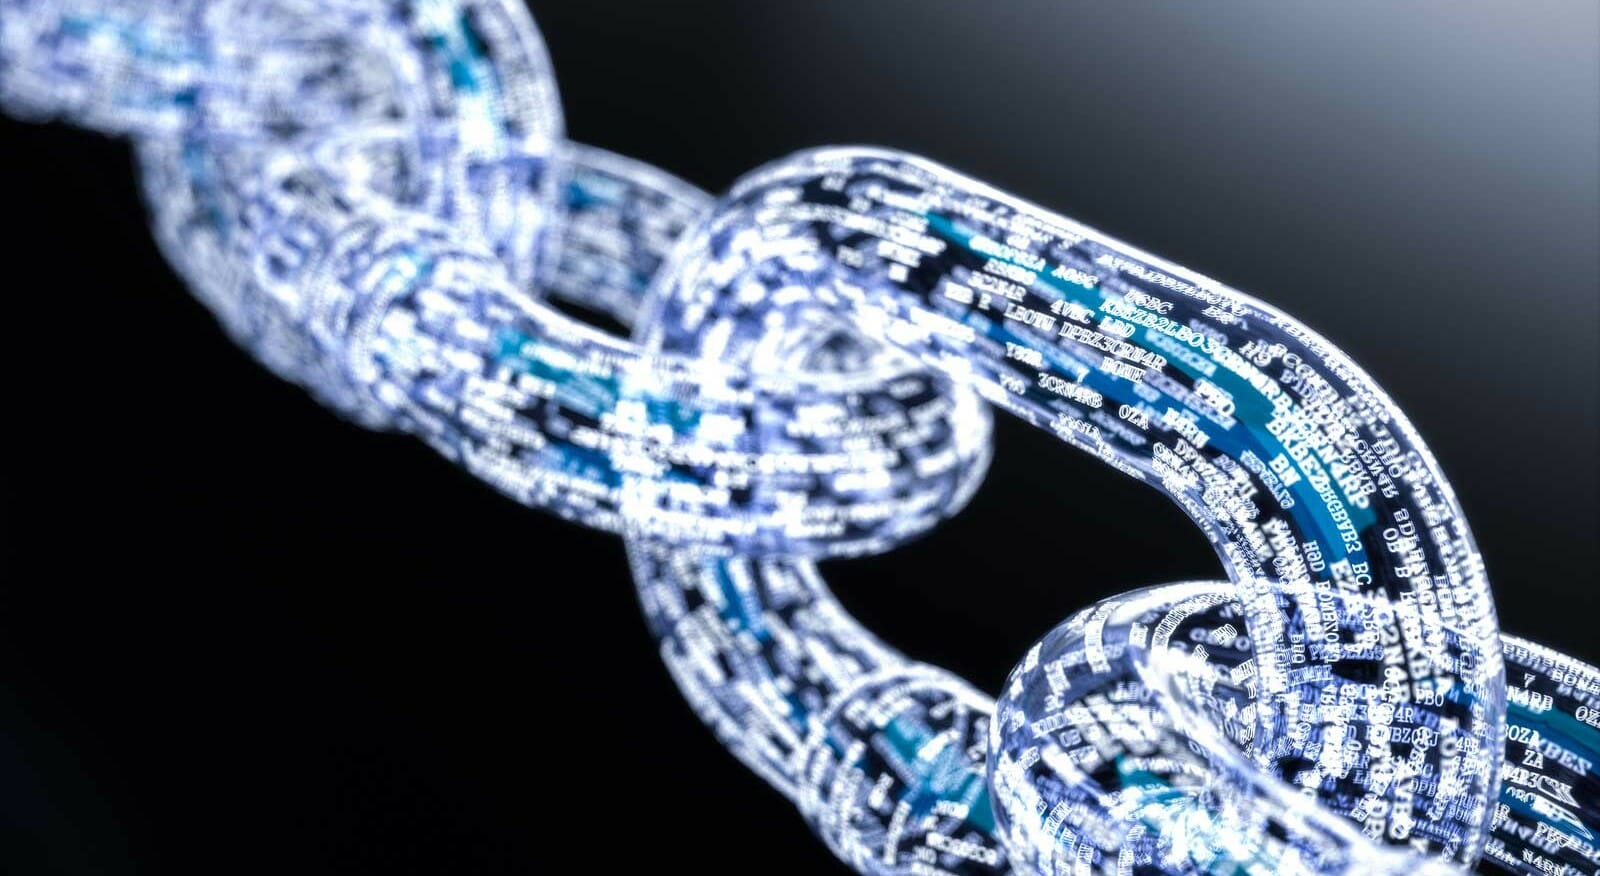 blockchain & AI - opportunities and challenges for the legal, accountancy and finance industries